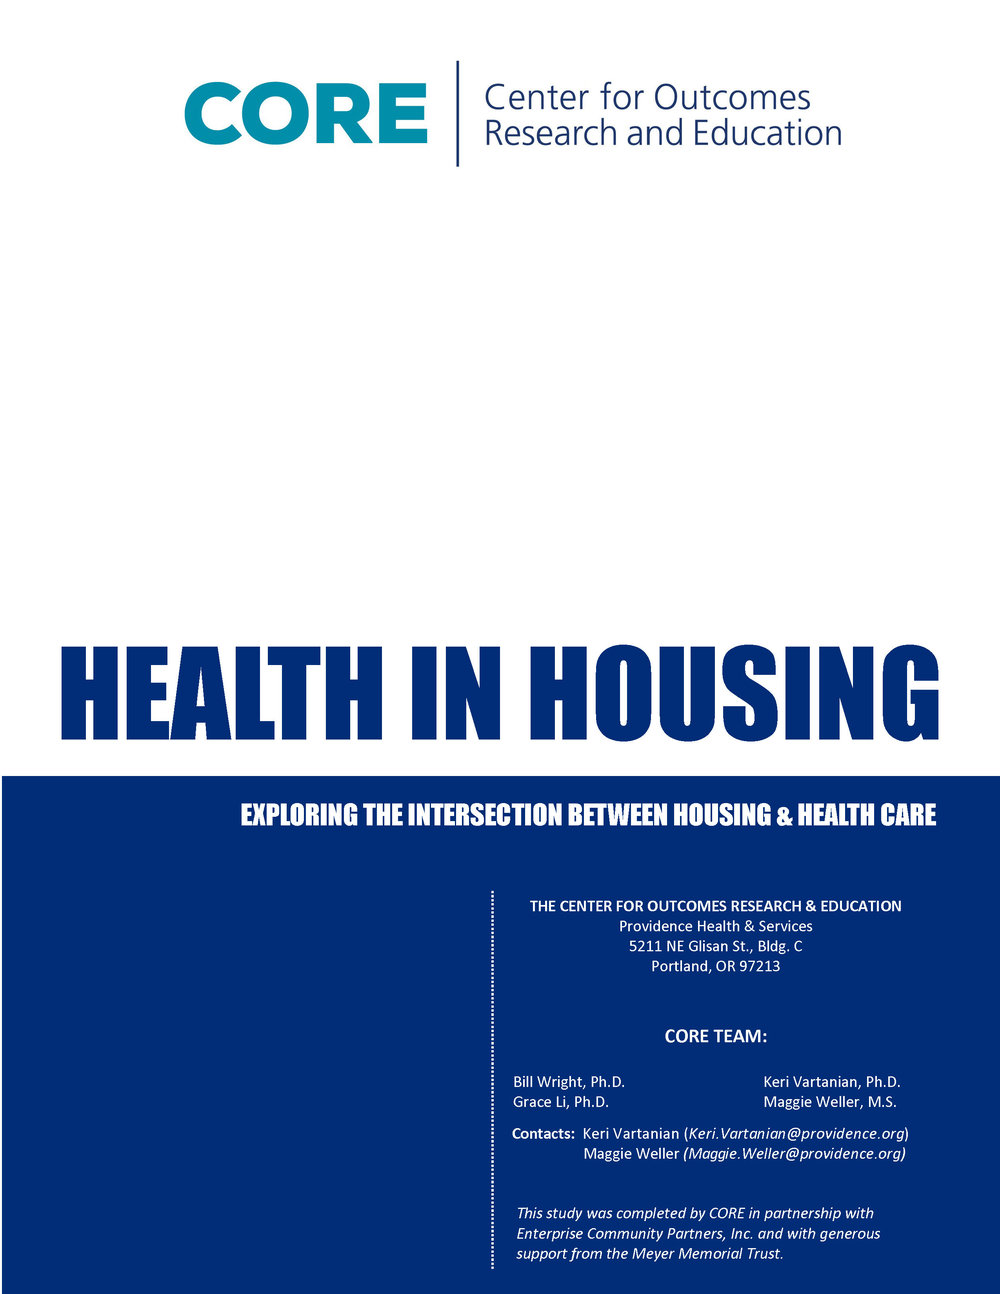 Health in Housing Report, February 2016